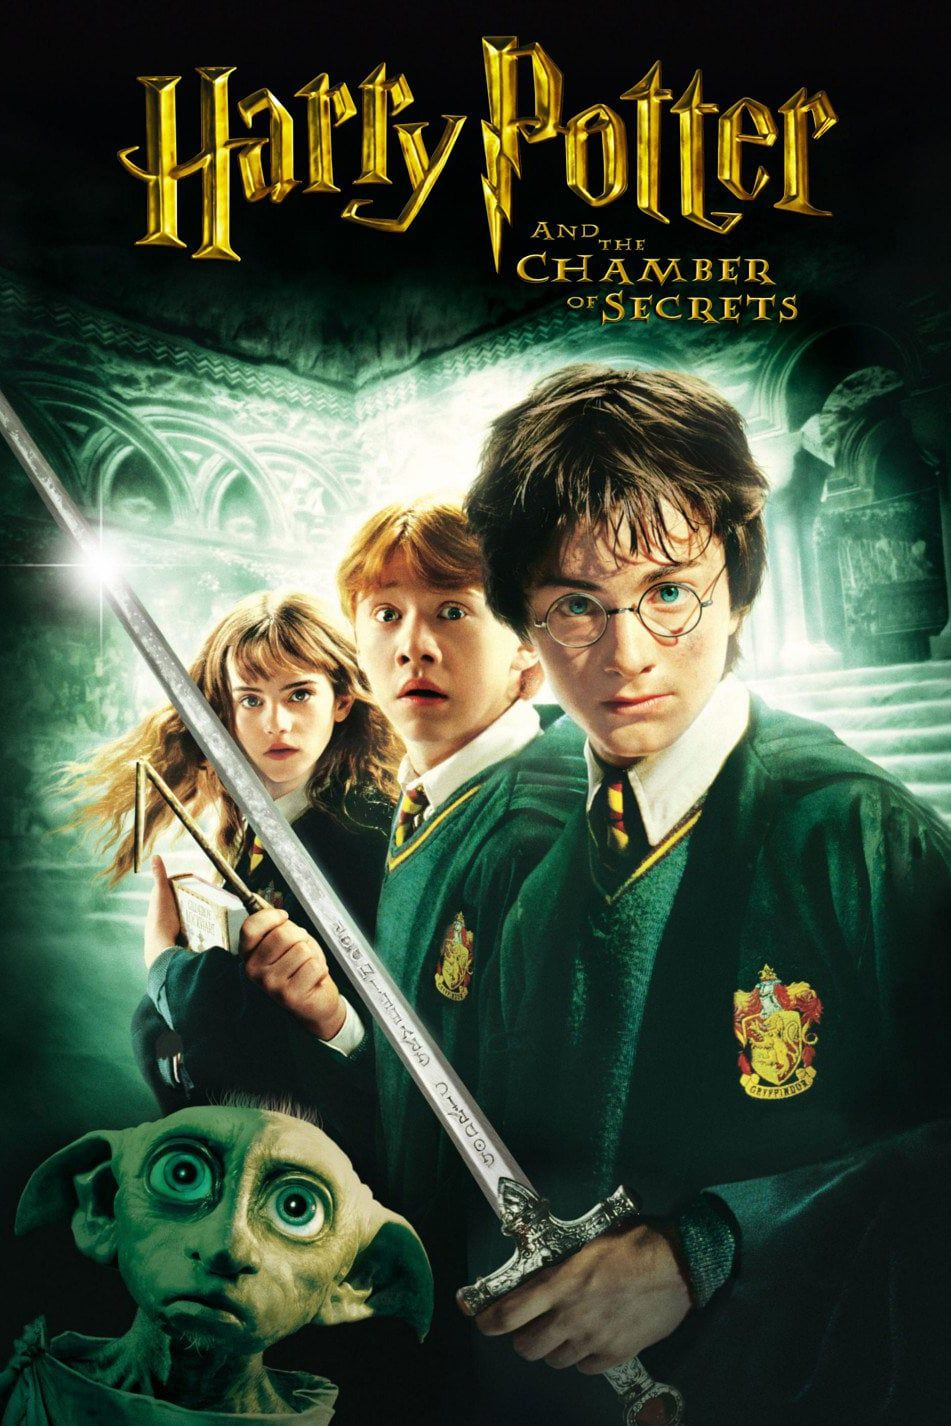 Harry Potter and the Chamber of Secrets | Harry potter movie posters, Harry  potter movies, Chamber of secrets